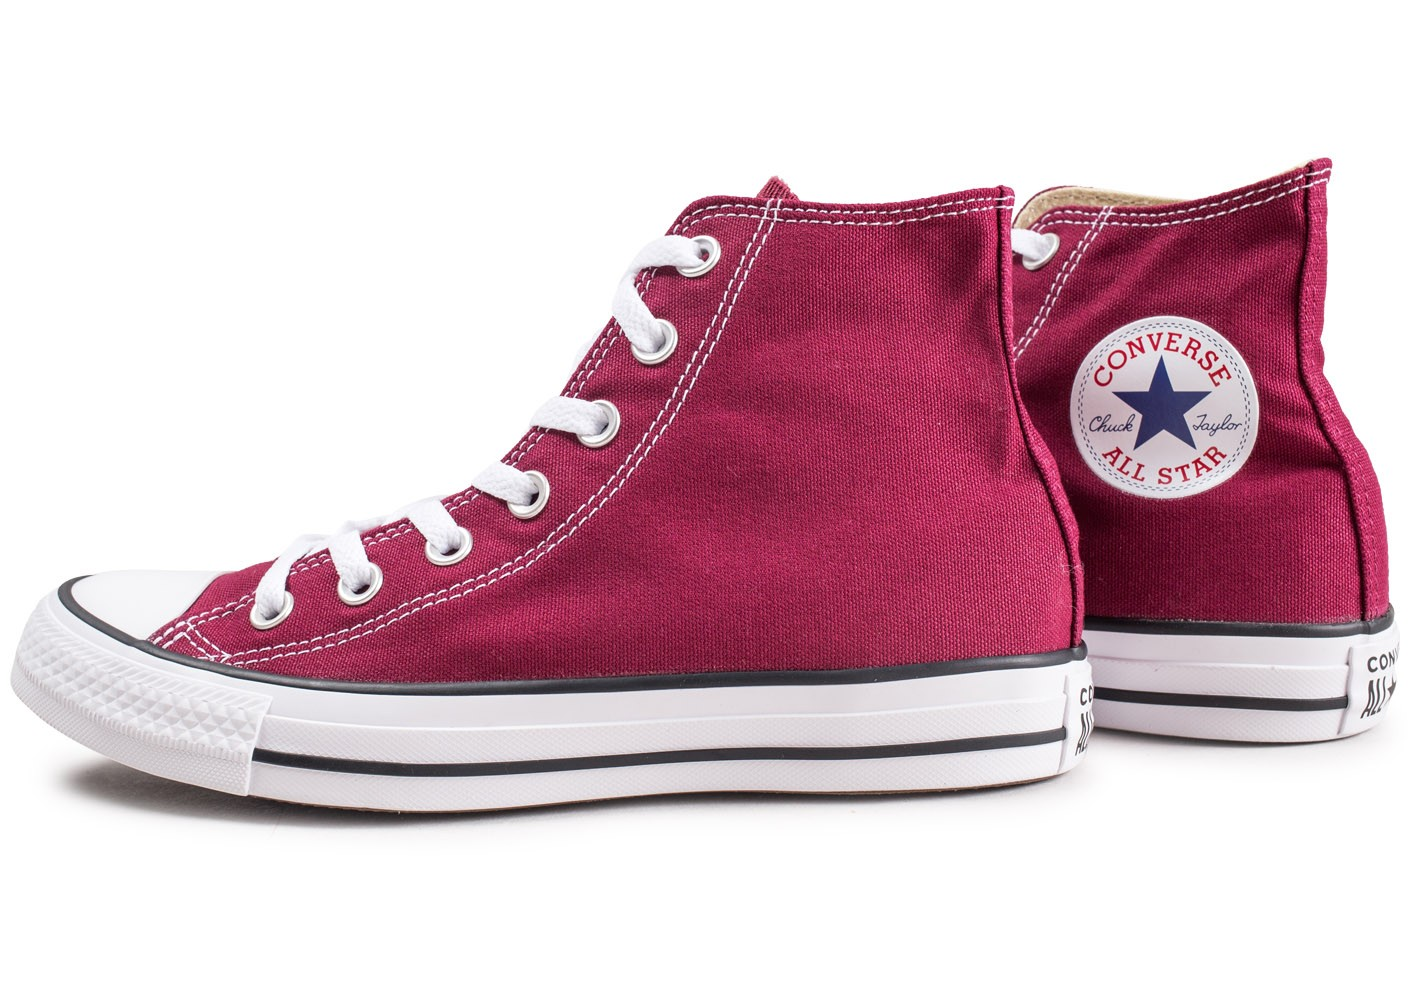 converse all star femme bordeaux